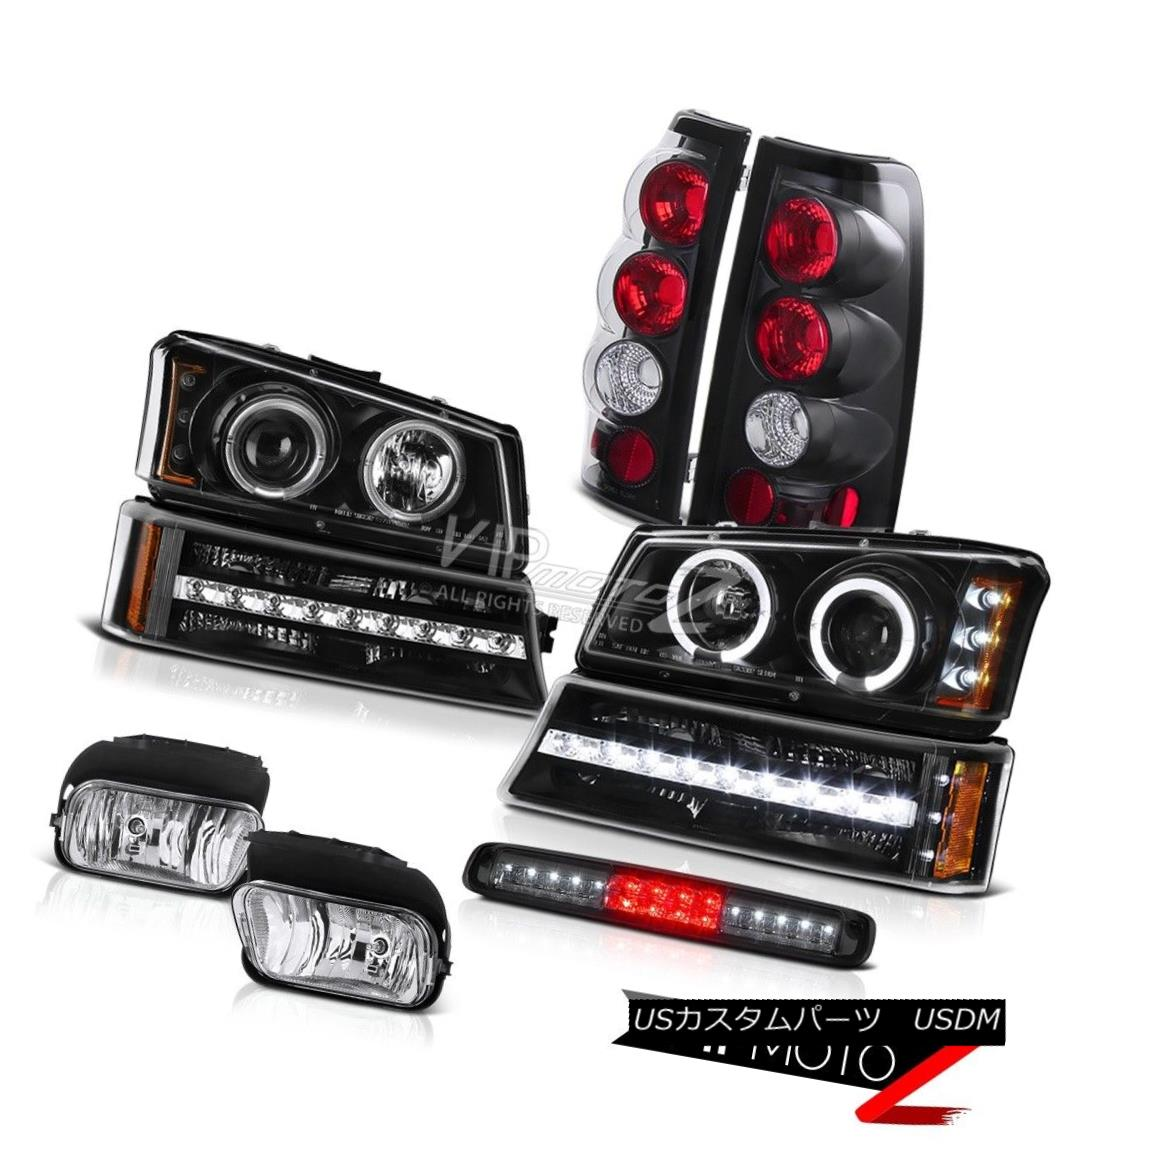 ヘッドライト 03-06 Chevy Silverado Foglamps Smokey Roof Cab Lamp Bumper Headlights Taillights 03-06 Chevy Silverado Foglampsスモーキールーフキャブランプバンパーヘッドライトテールライト